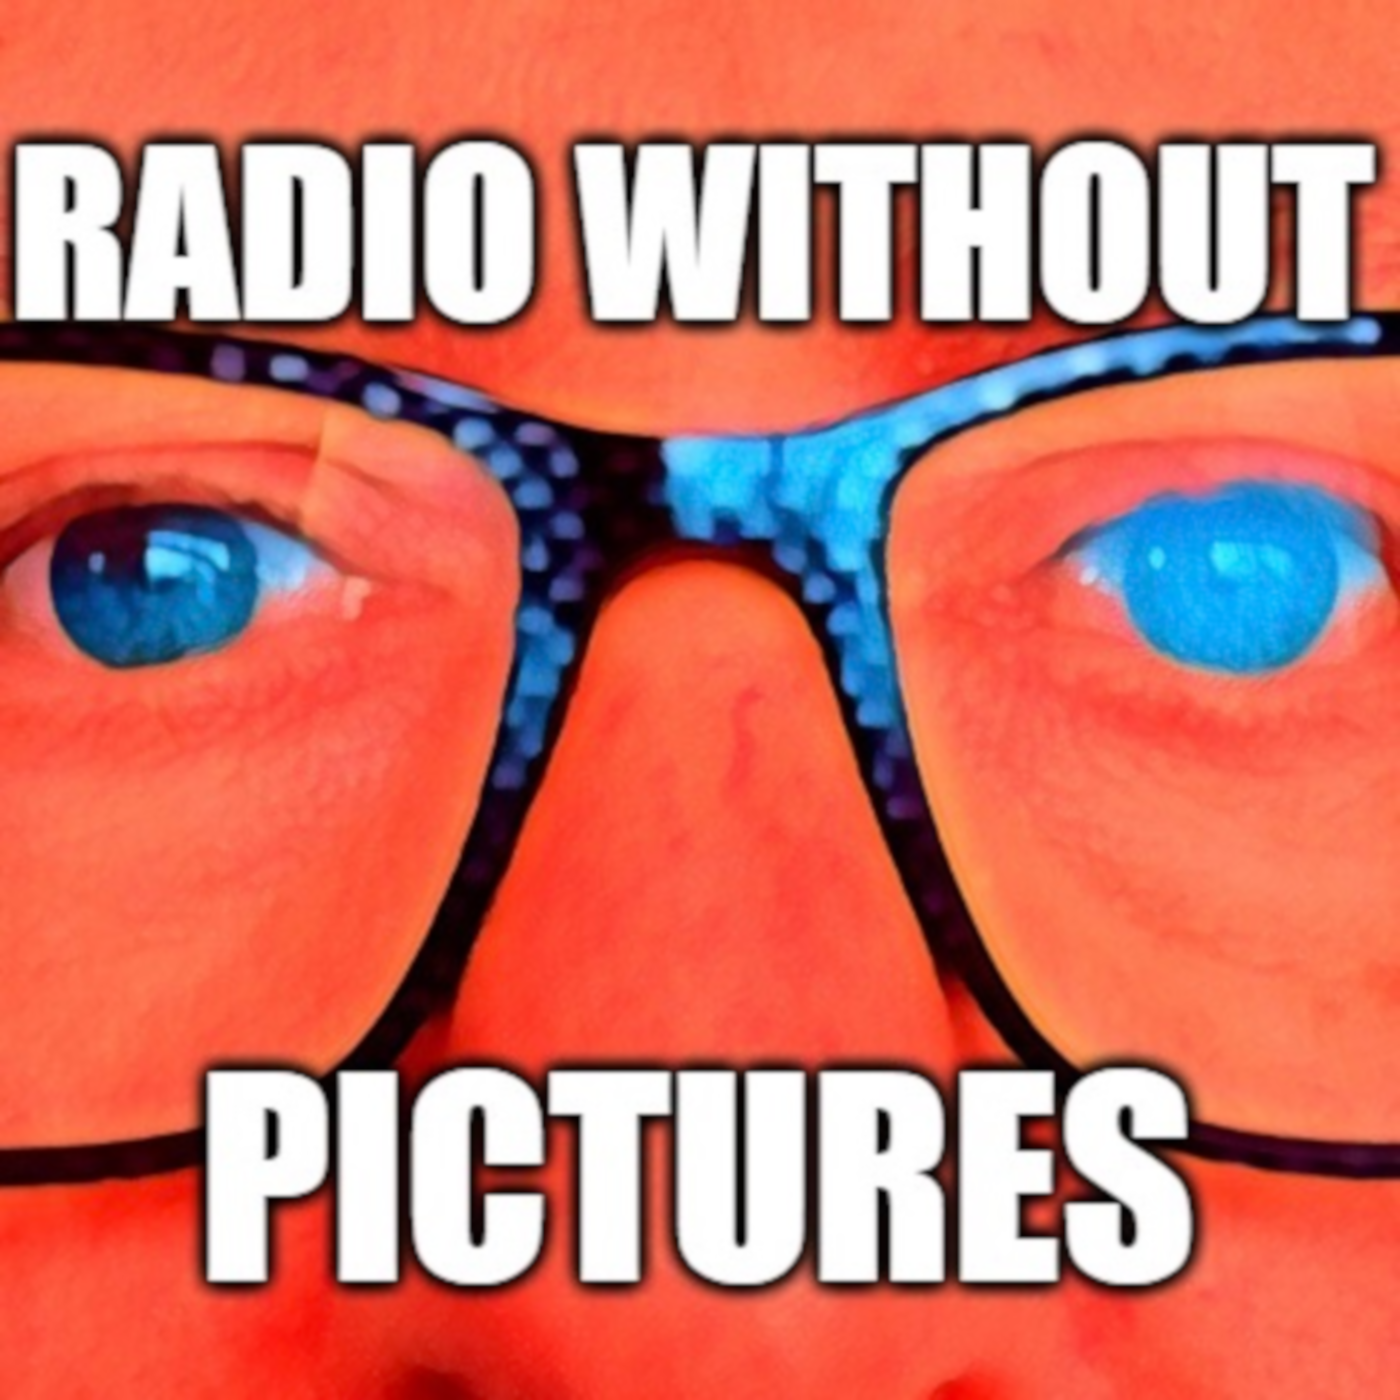 Radio without Pictures - Darren Ludlow-24-09-2018